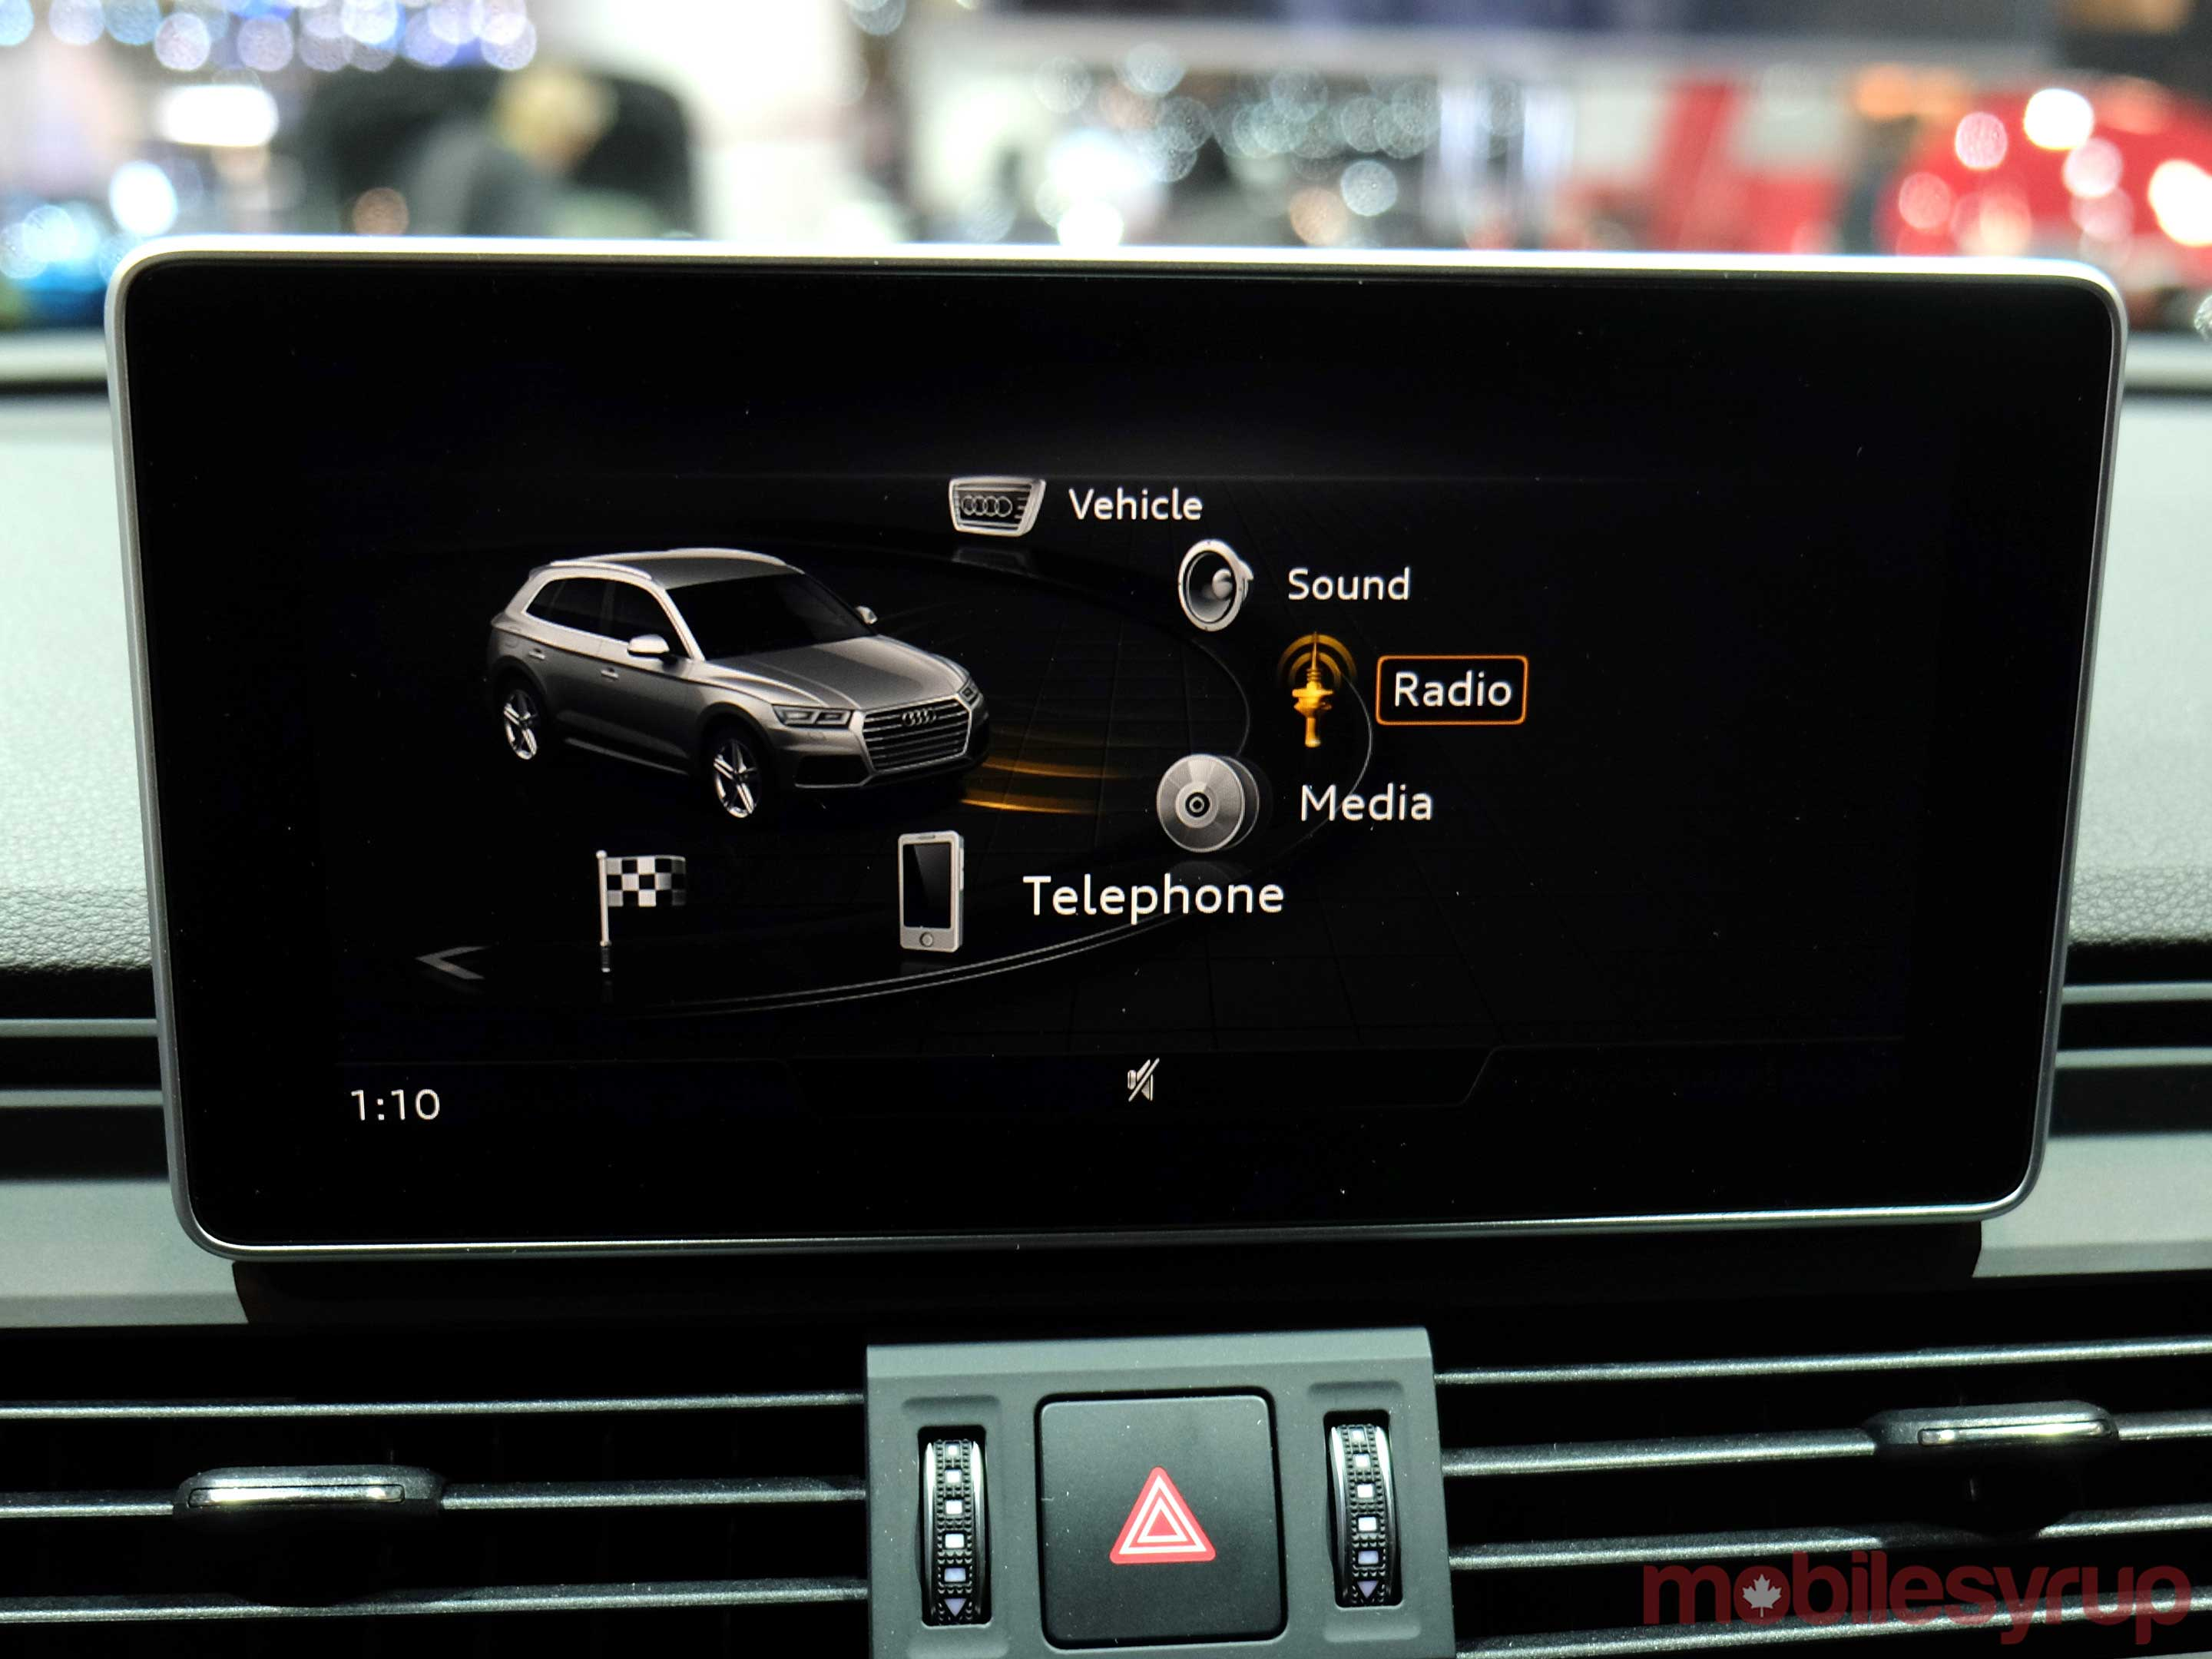 Audi infotainment screen at auto show